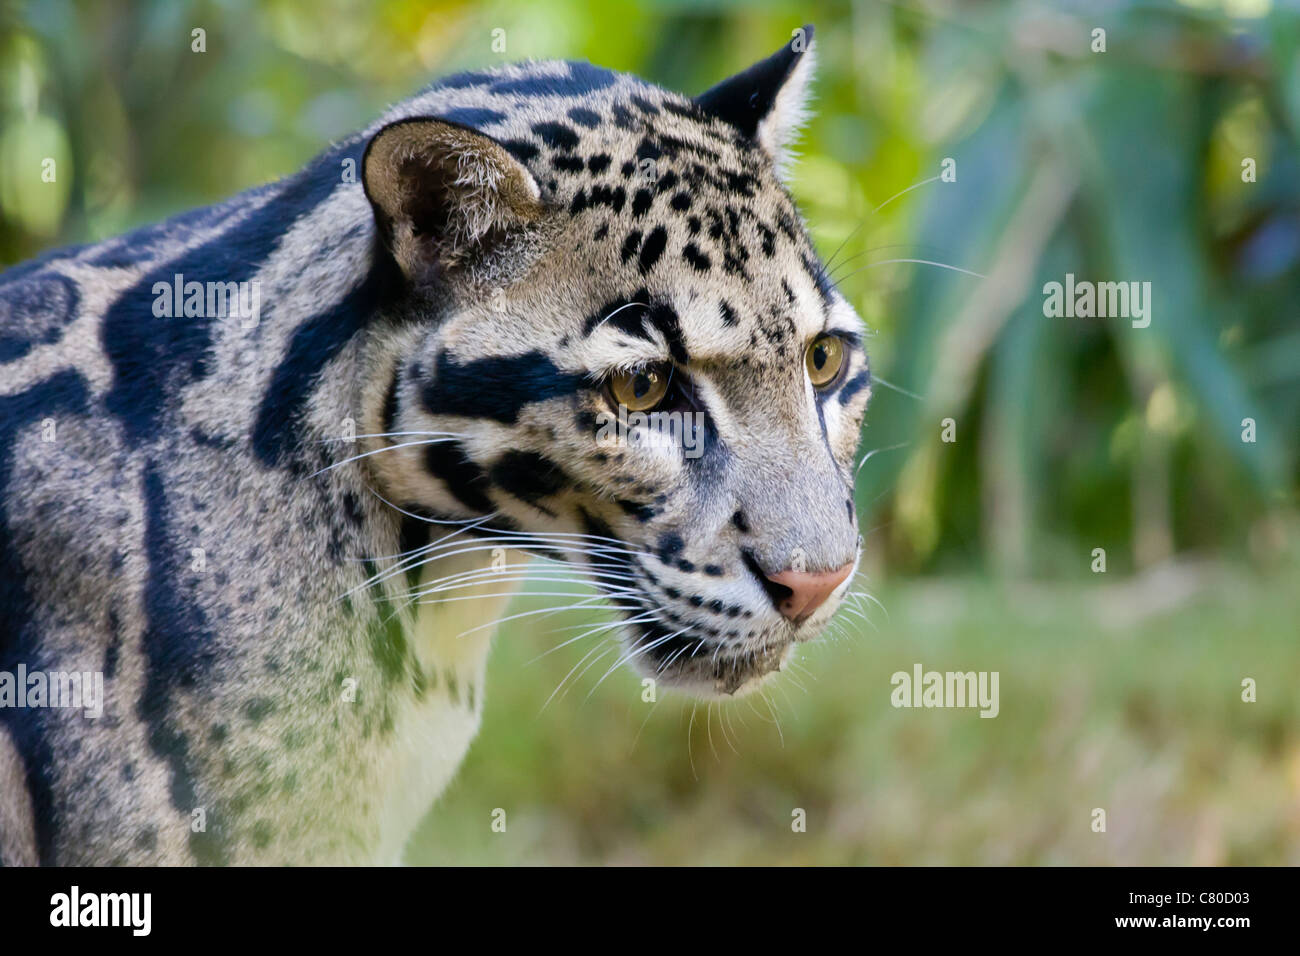 Clouded Leopard - Neofelis Nebuloso - Stock Image